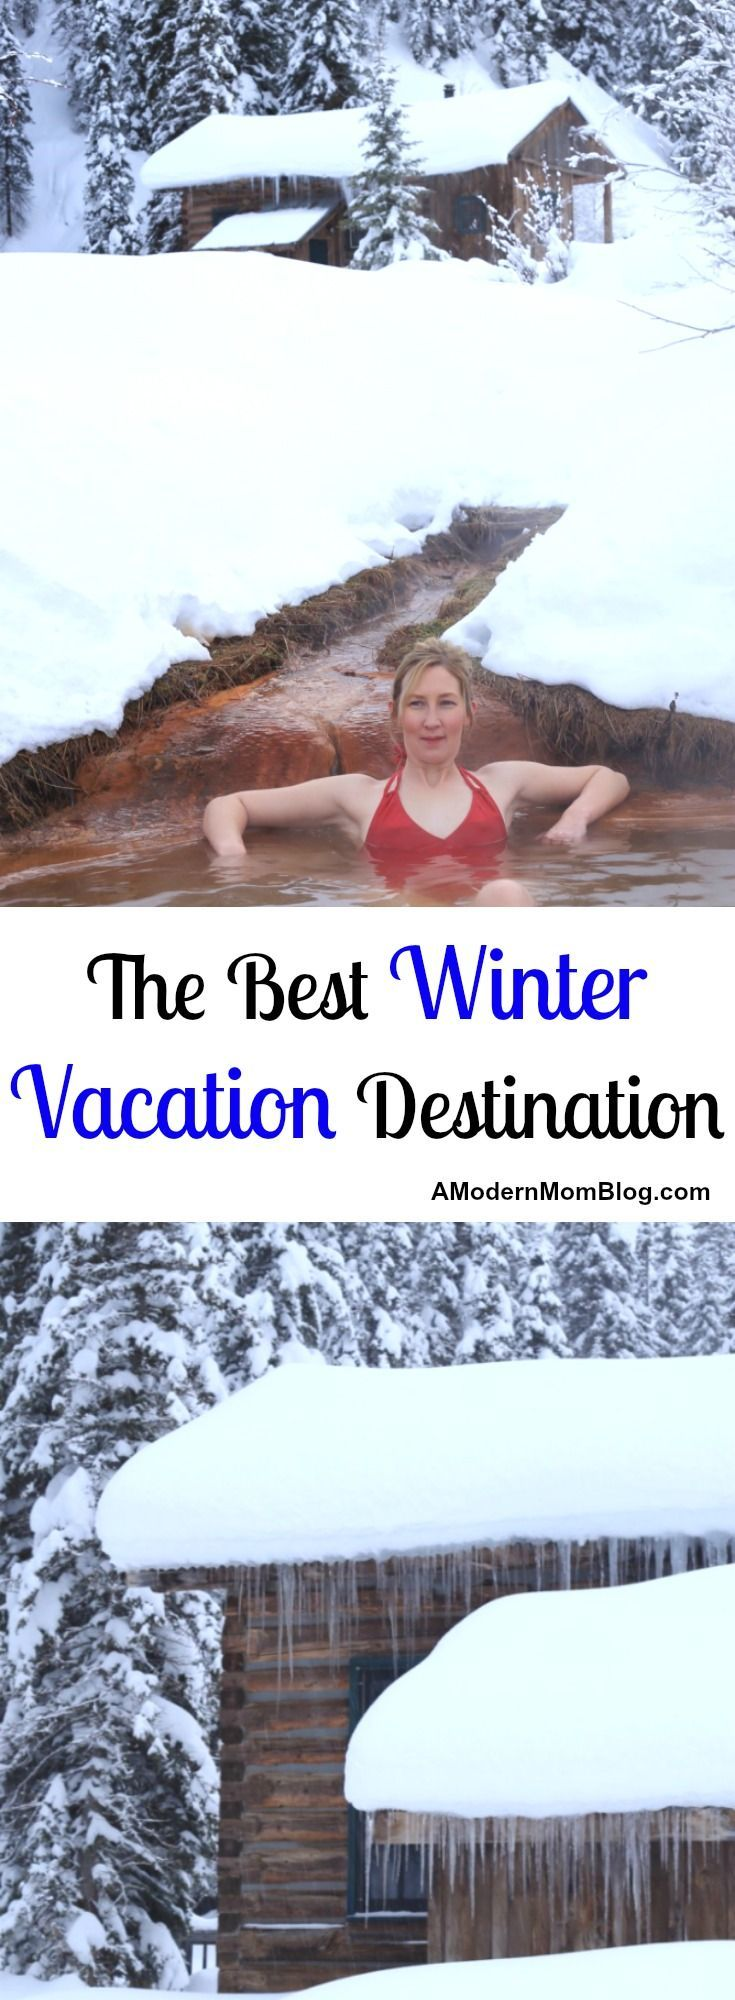 winter vacation ideas united states family winter vacations for snow family winter vacation destination #vacationdestinations